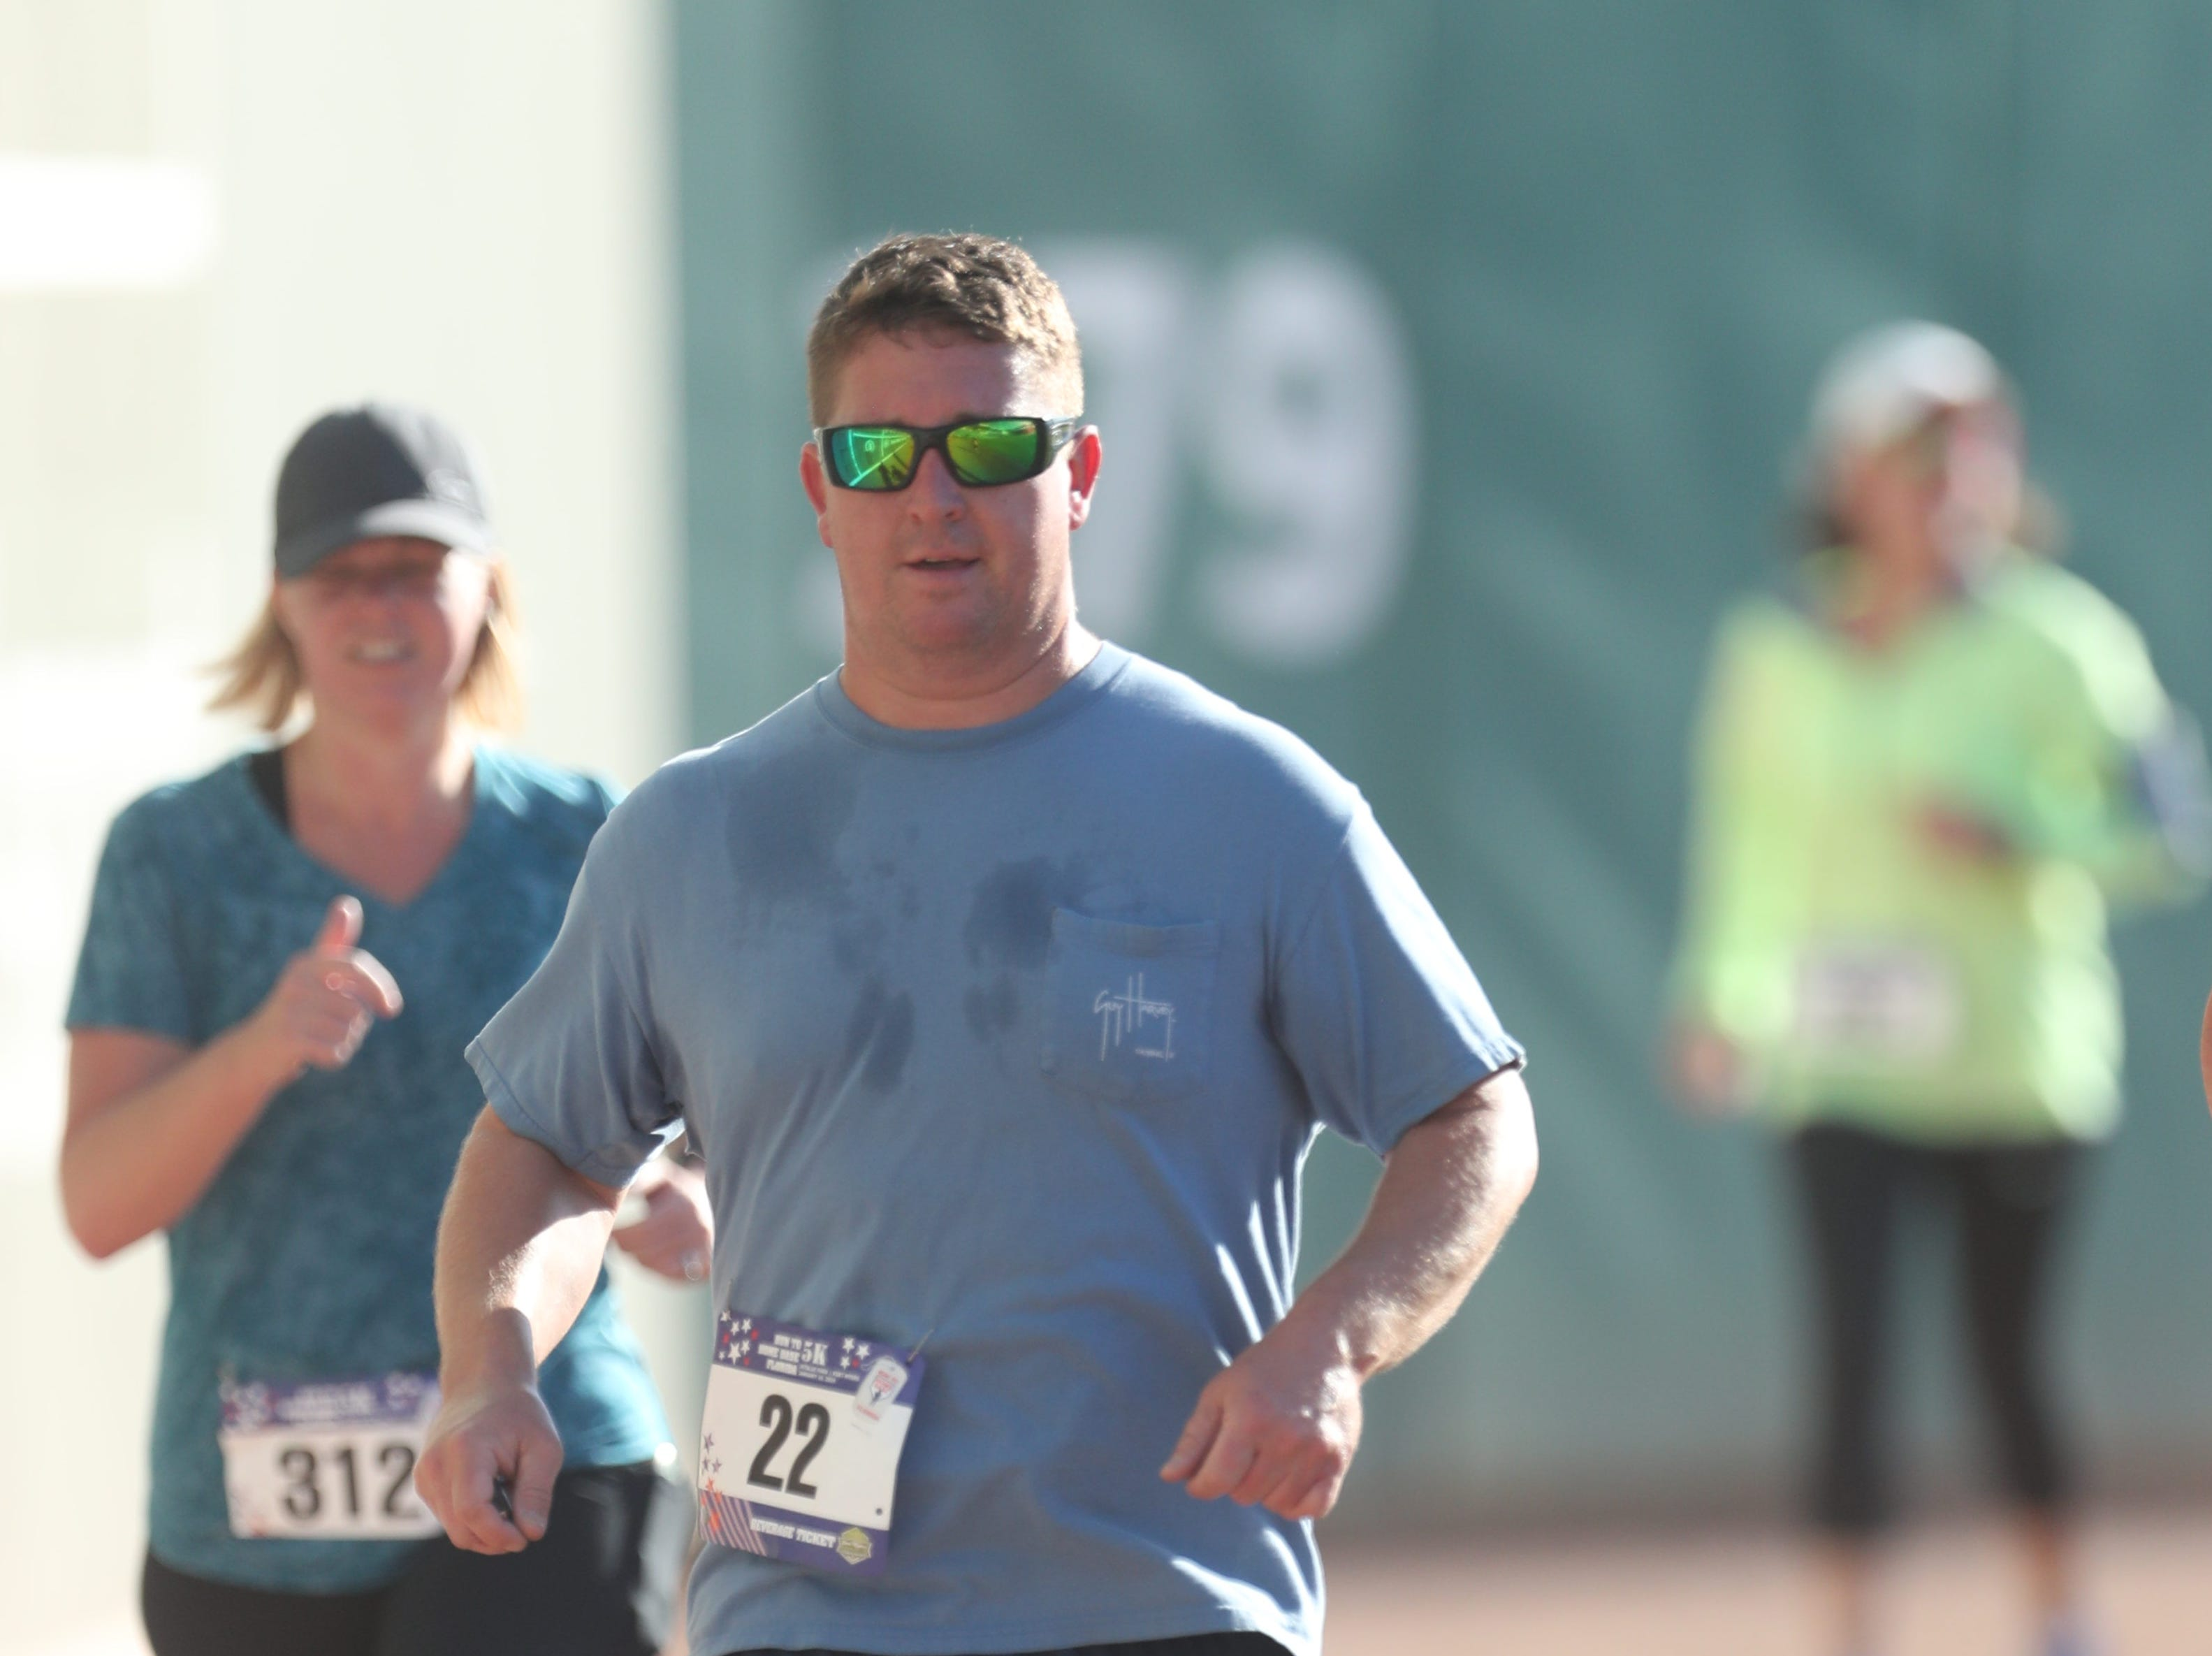 Hundreds of runners and walkers supported the Run to Home Base Florida event on Saturday at JetBlue Park at Fenway South in Fort Myers. The annual race honors and supports Southwest Florida Veterans and their Families. All proceeds go directly to Home Base's Southwest Florida initiatives, including our Warrior Health and Fitness Program and the two-week Intensive Clinical Program.